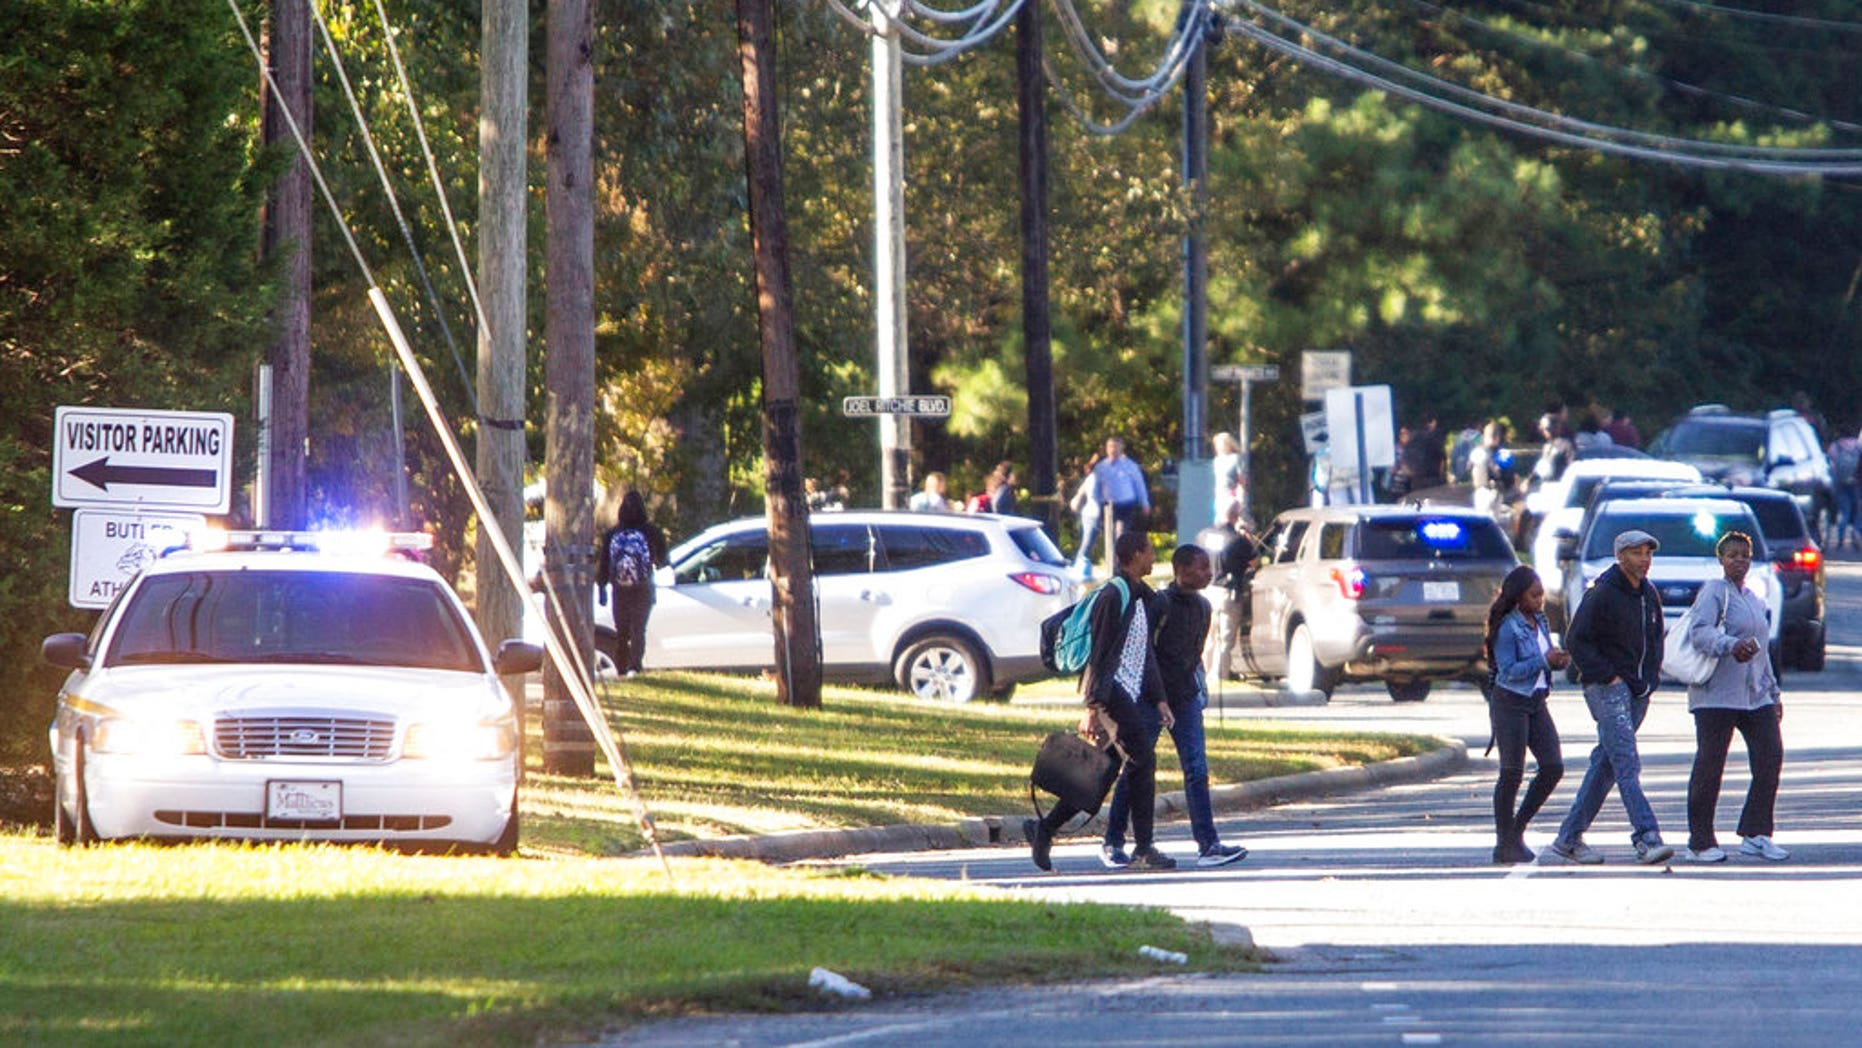 A student shot and killed a fellow classmate during a fight in a crowded school hallway Monday, officials said, prompting a lockdown and generating an atmosphere of chaos and fear as dozens of parents rushed to the school to make sure their children were safe.